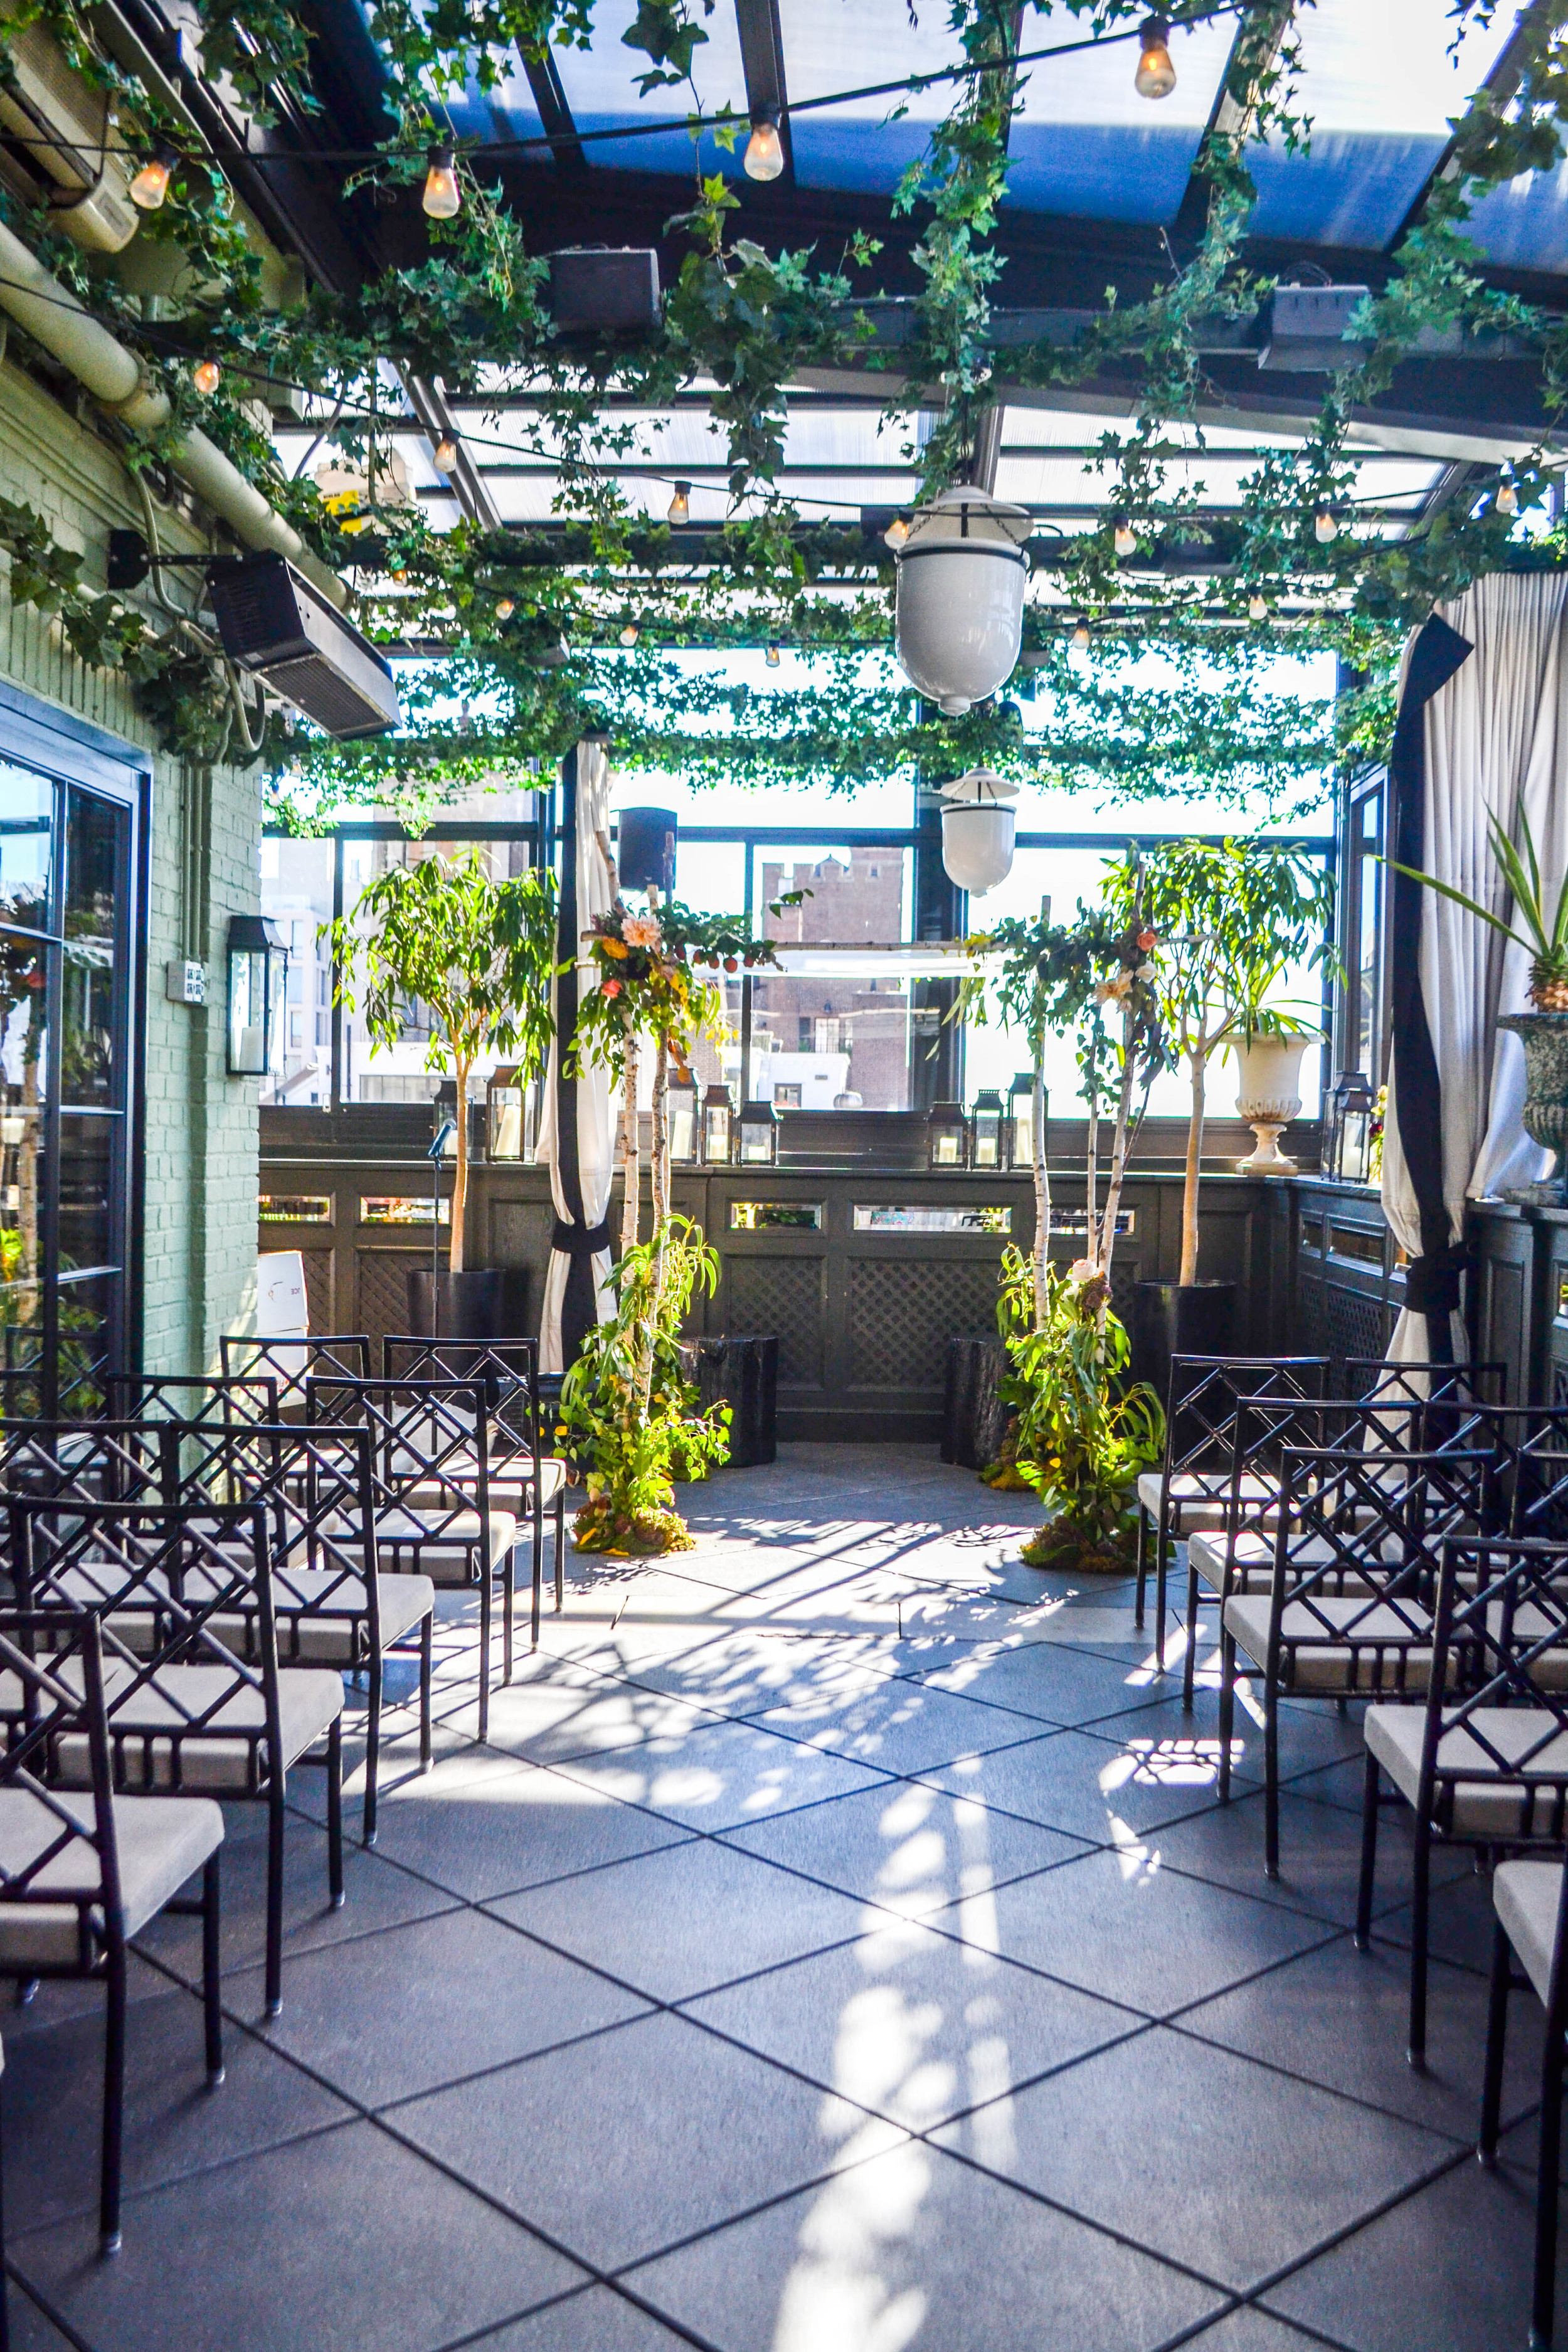 Birch chuppah at Gramercy Park Hotel Terrace